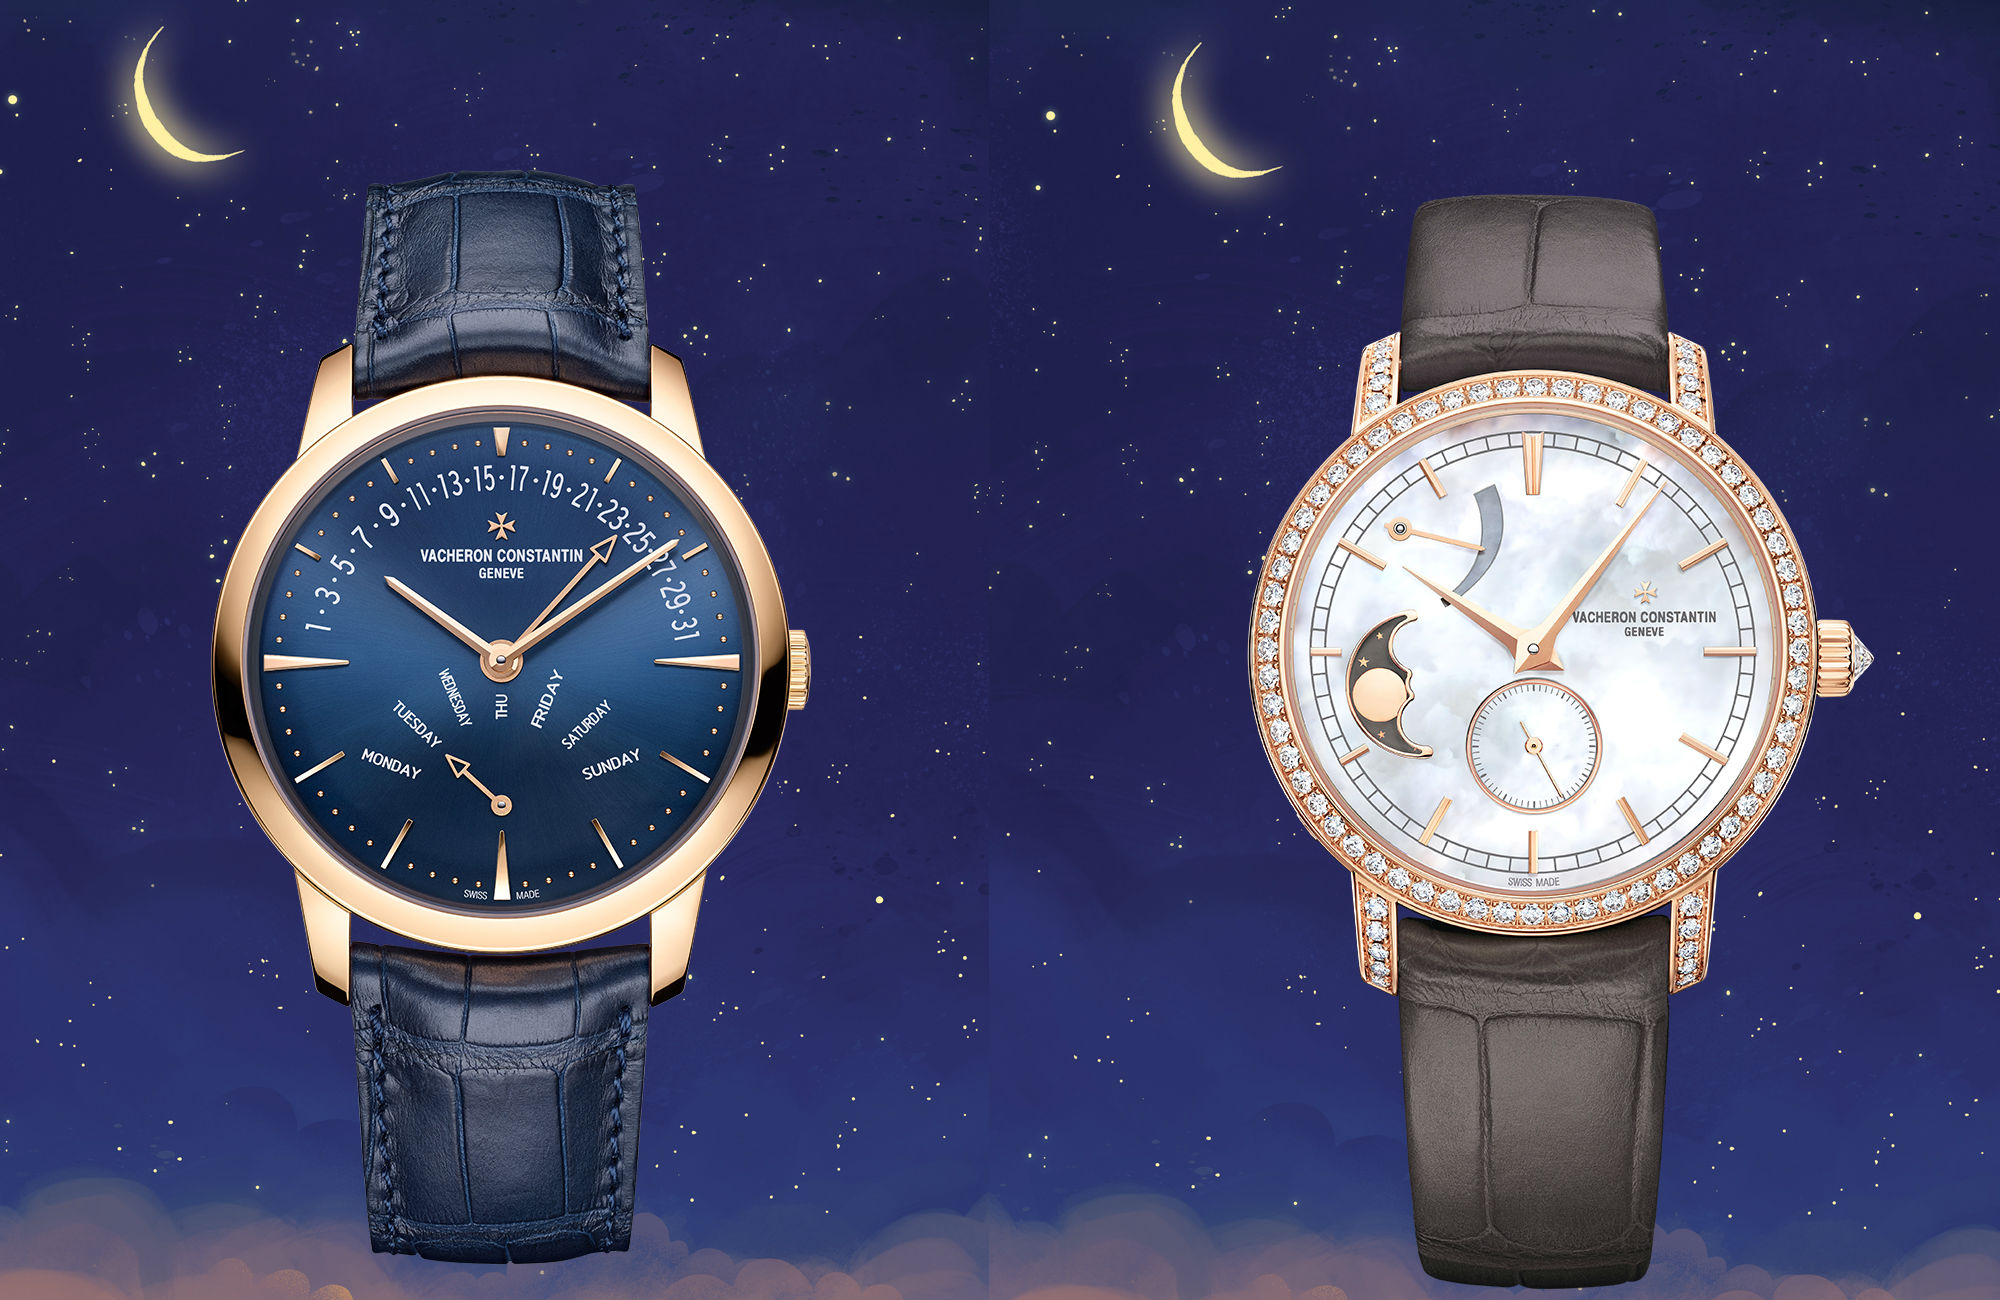 See the three designs dedicated to the region by Vacheron Constantin